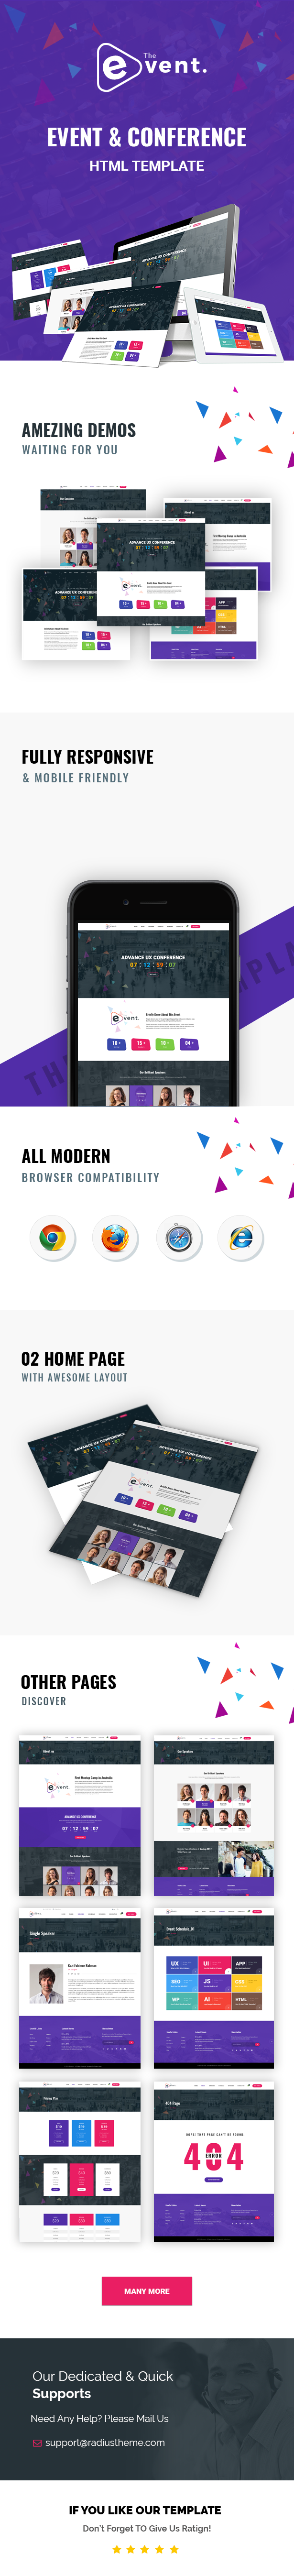 TheEvent - Event and Conference HTML5 Template